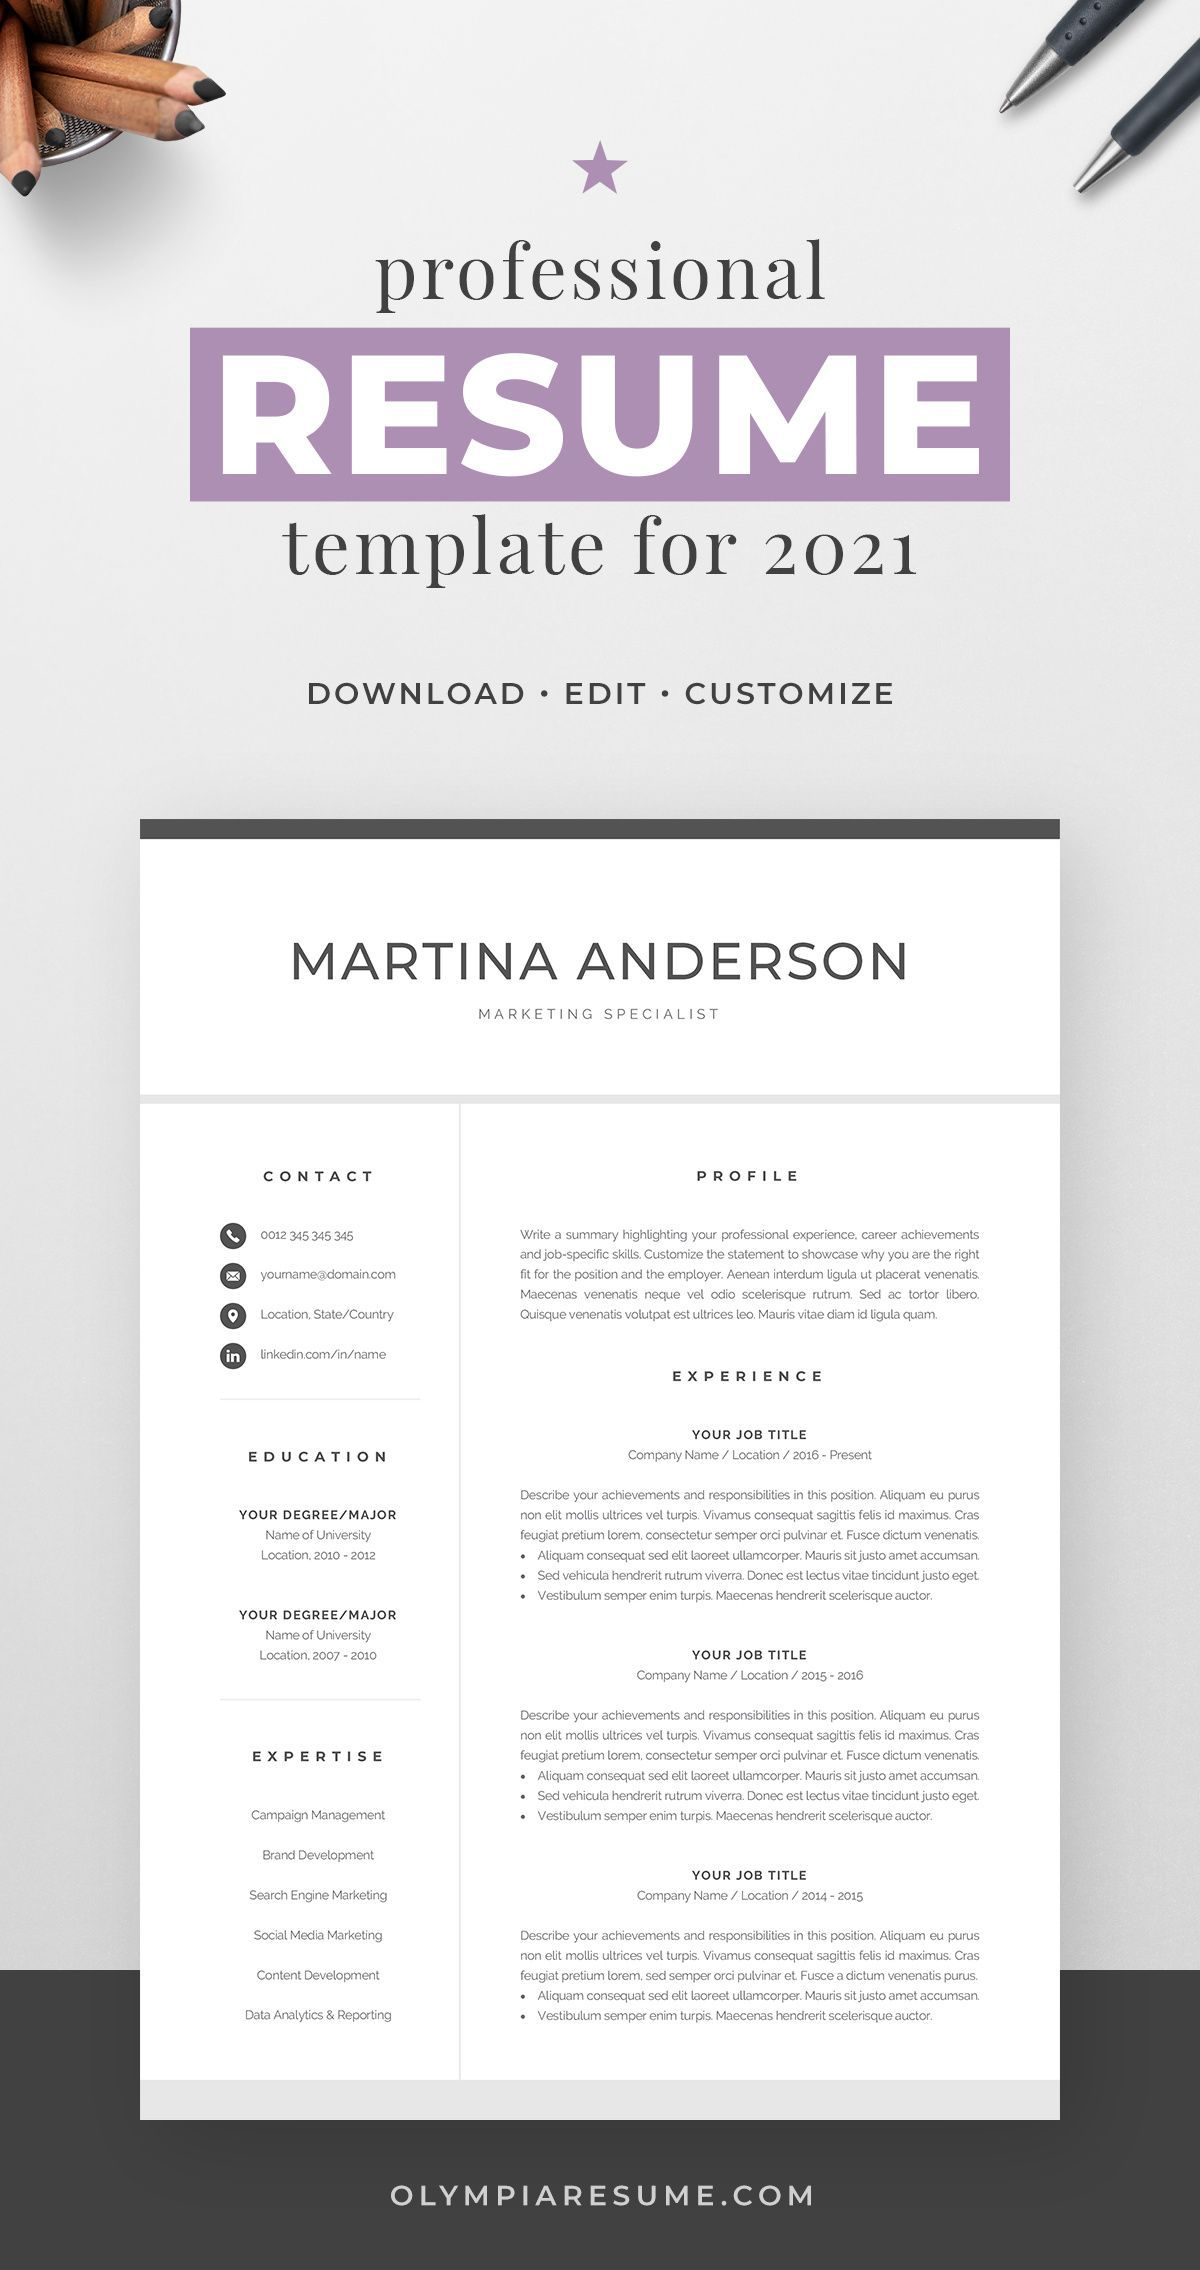 Professional Resume Template for 2021 Modern CV Design with Matching Cover Letter